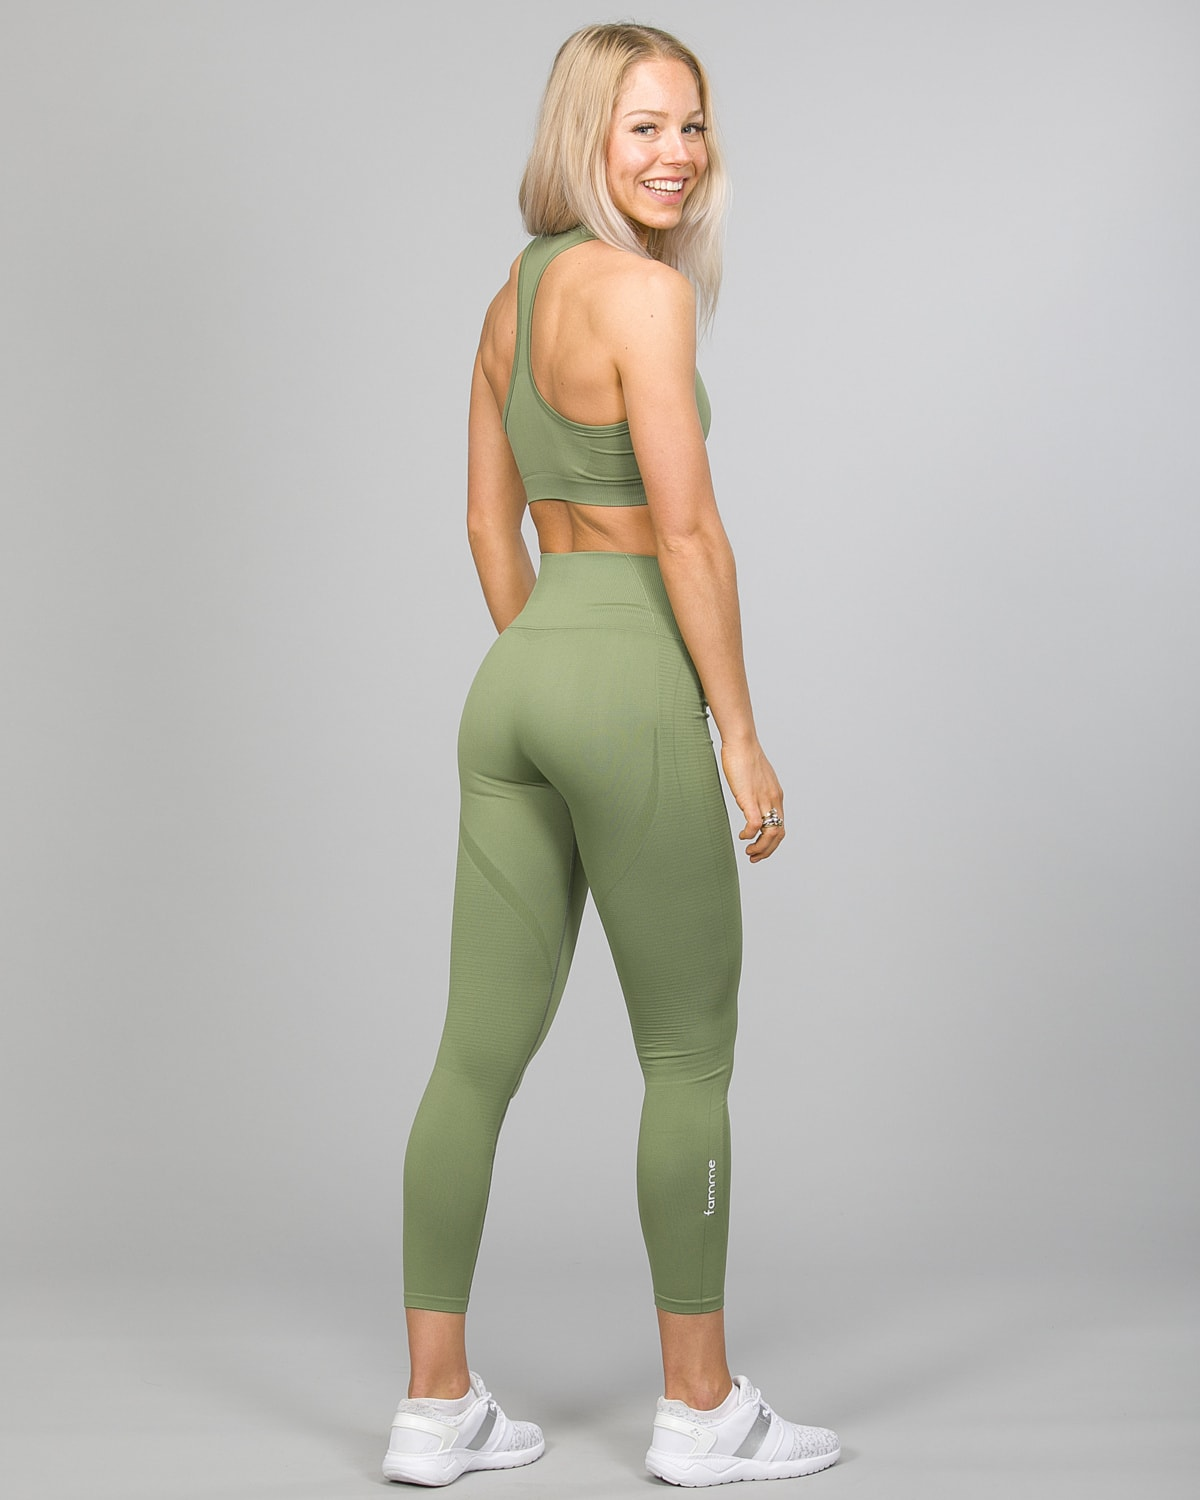 Famme Vortex Legging vhwl-ag and Drop It Sports Bra disb-ag Army Green e